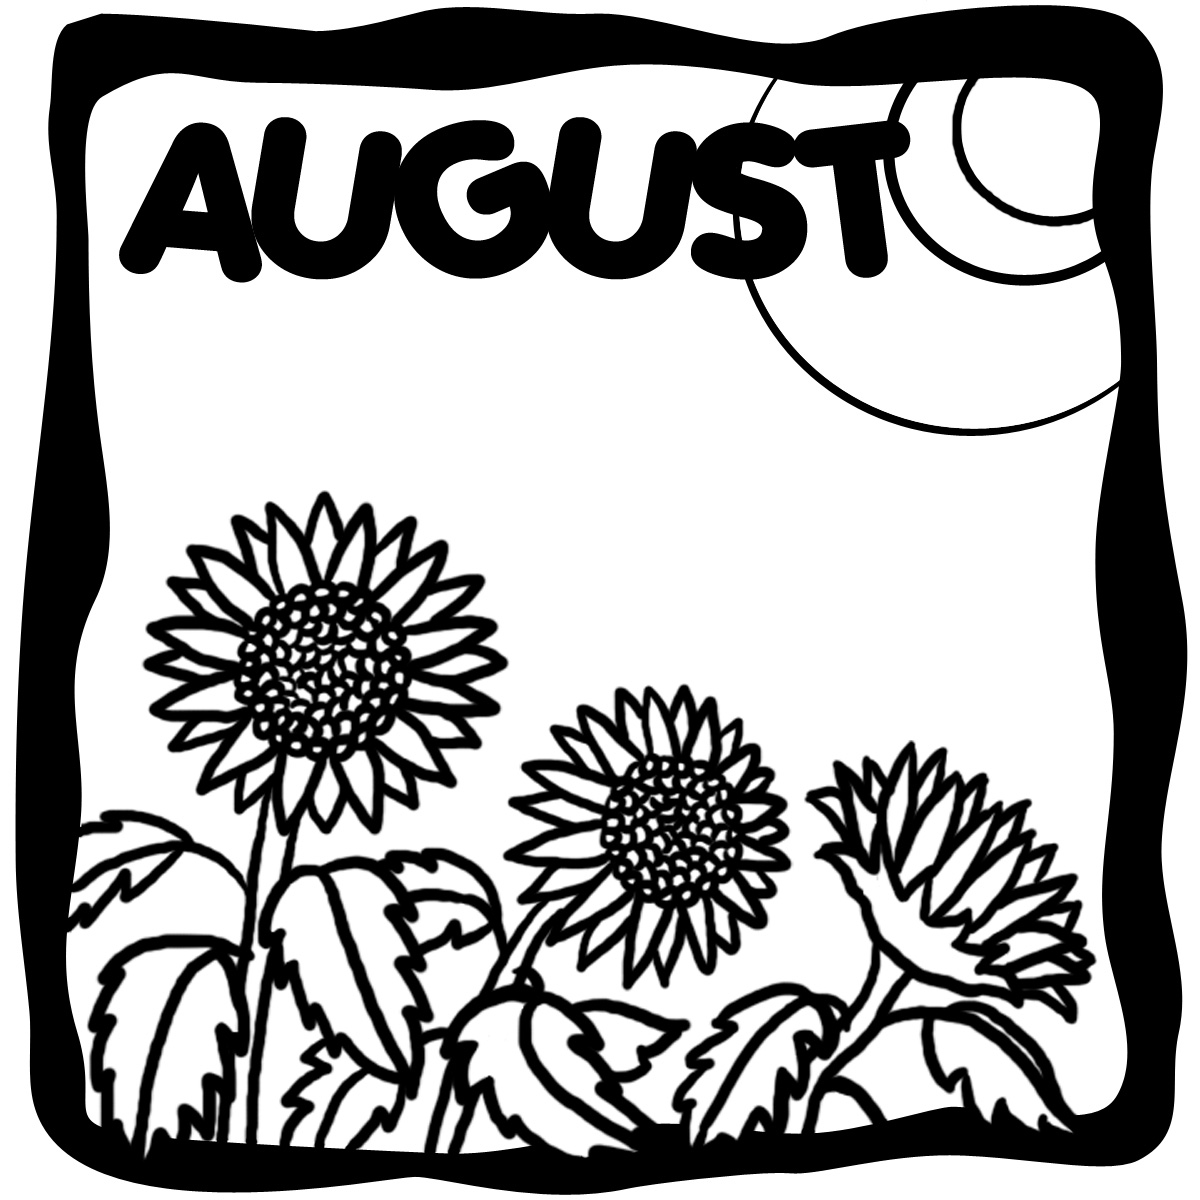 Monthly calendar clipart august clipart library stock August month calendar clipart - ClipartFest clipart library stock